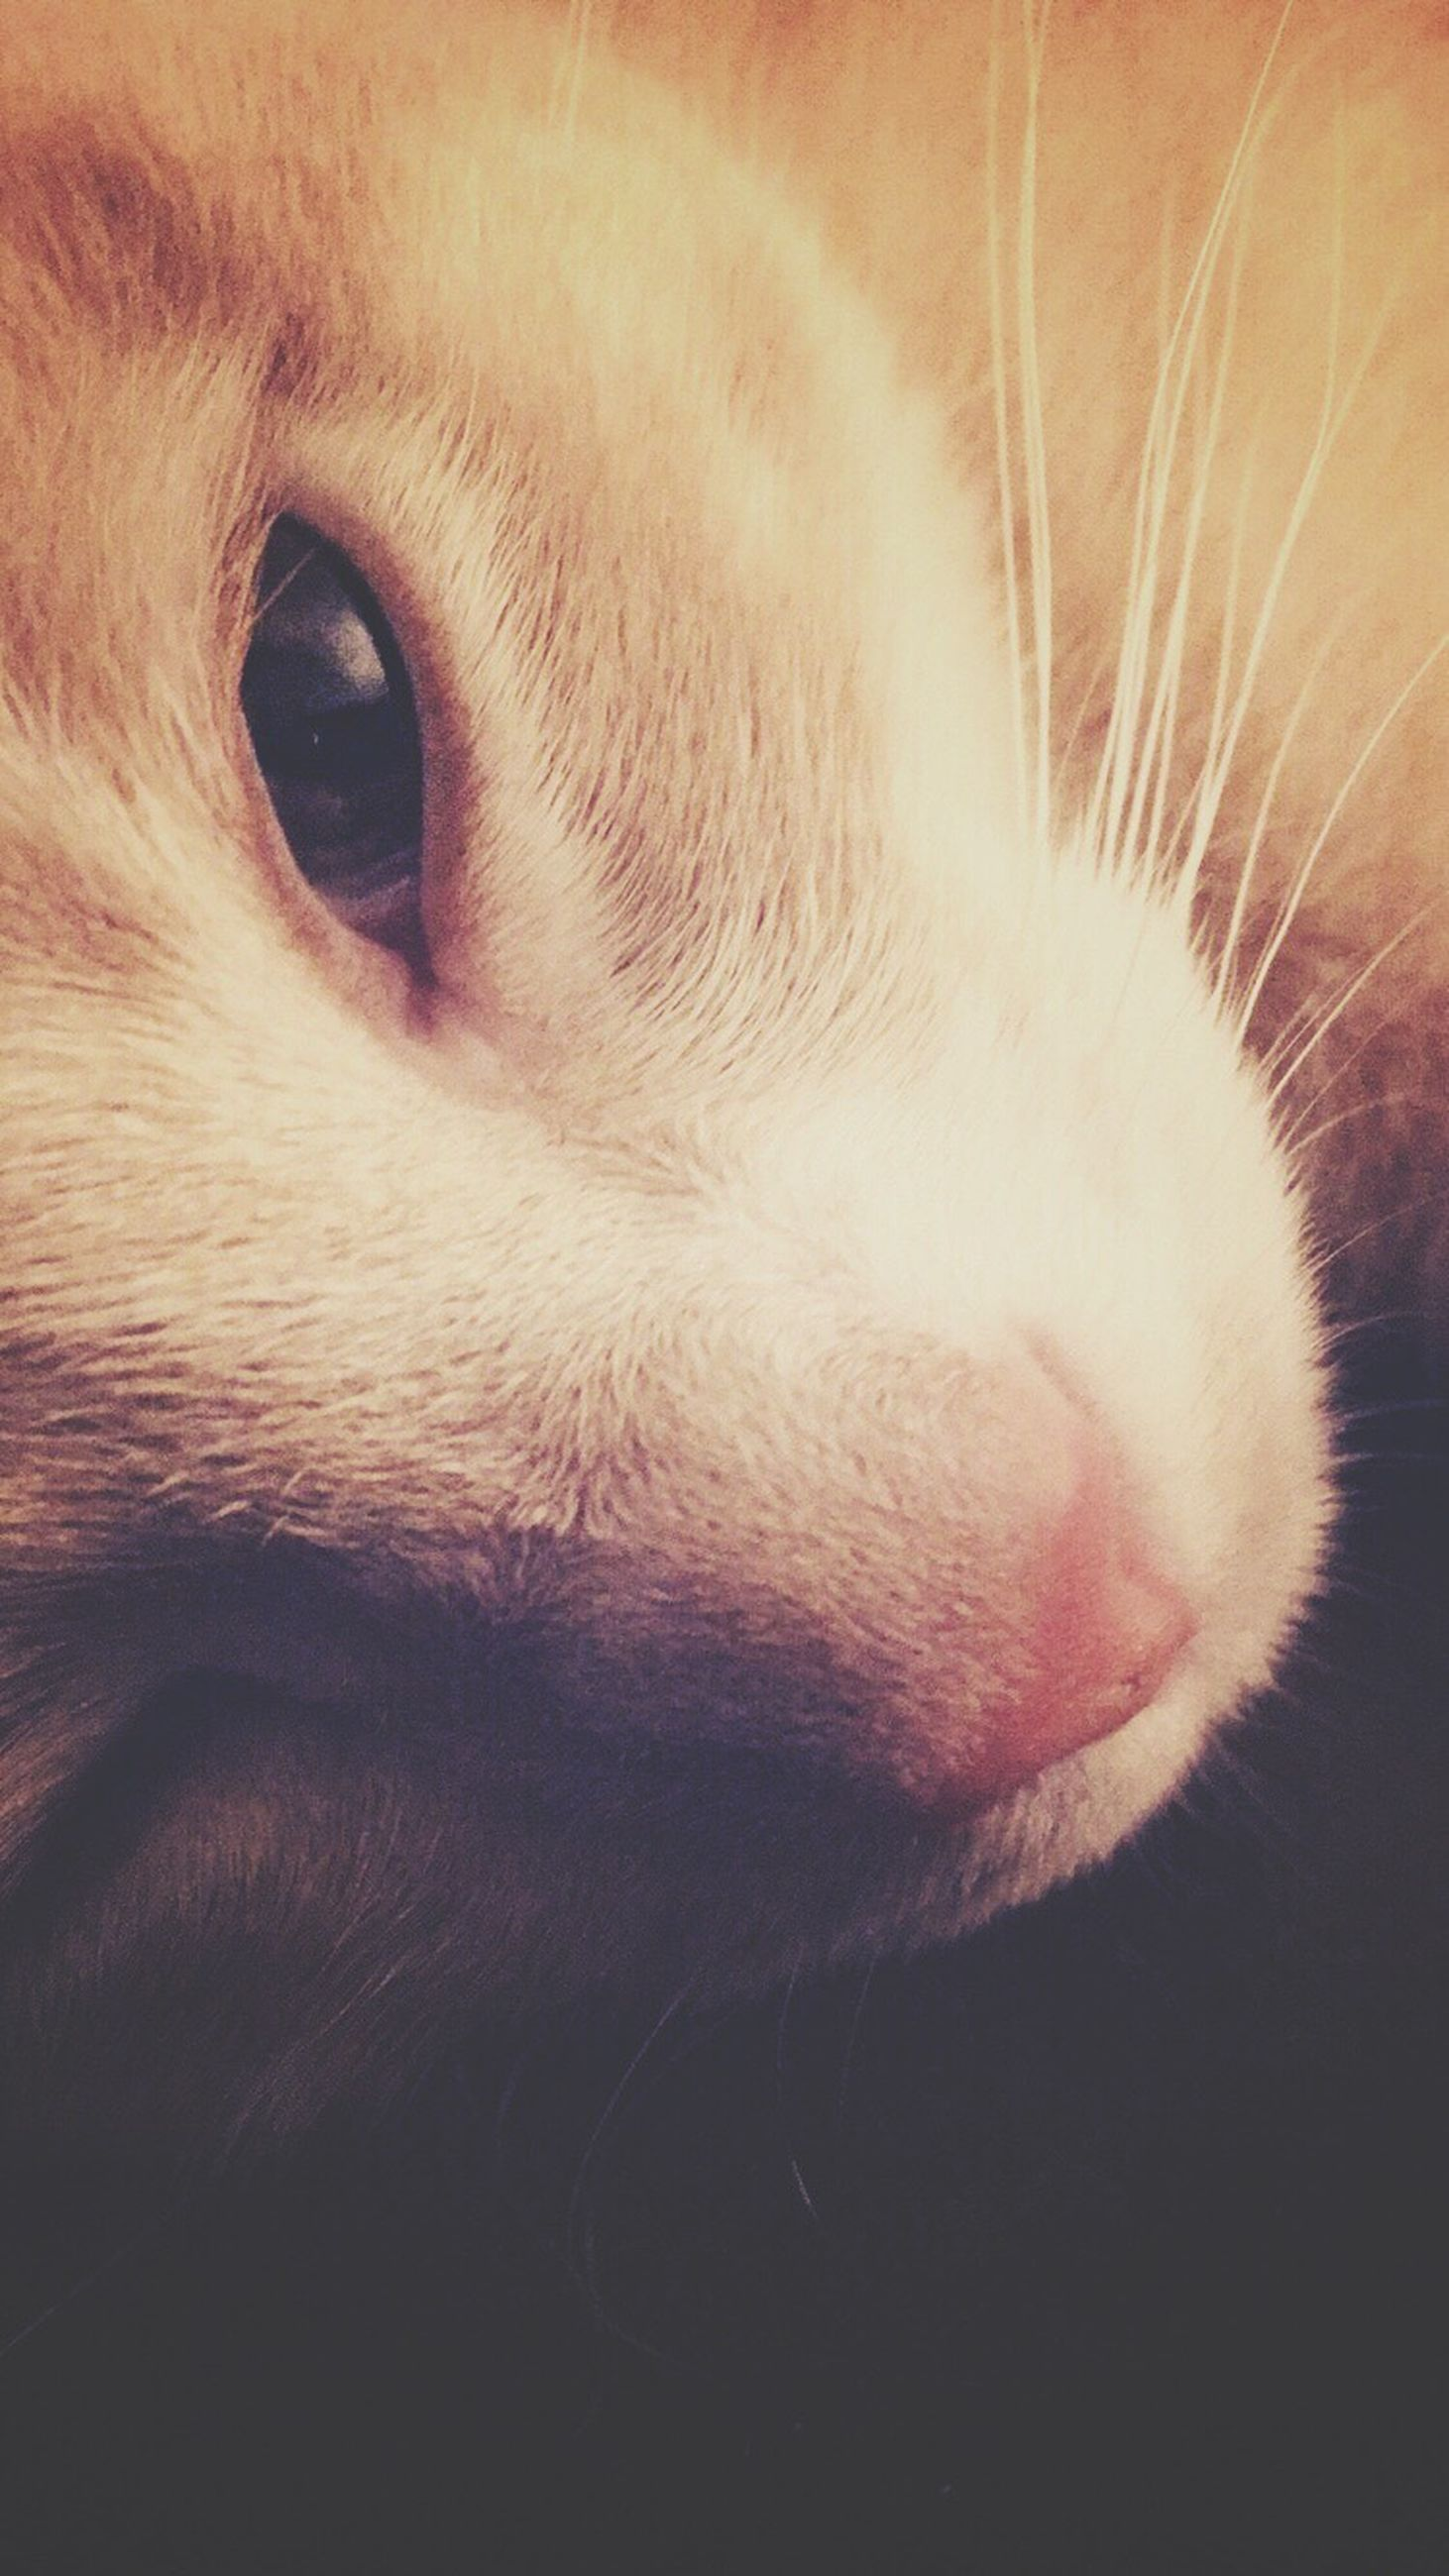 domestic animals, animal themes, one animal, pets, mammal, indoors, domestic cat, animal head, close-up, animal body part, cat, feline, whisker, part of, animal hair, animal eye, animal nose, zoology, snout, looking away